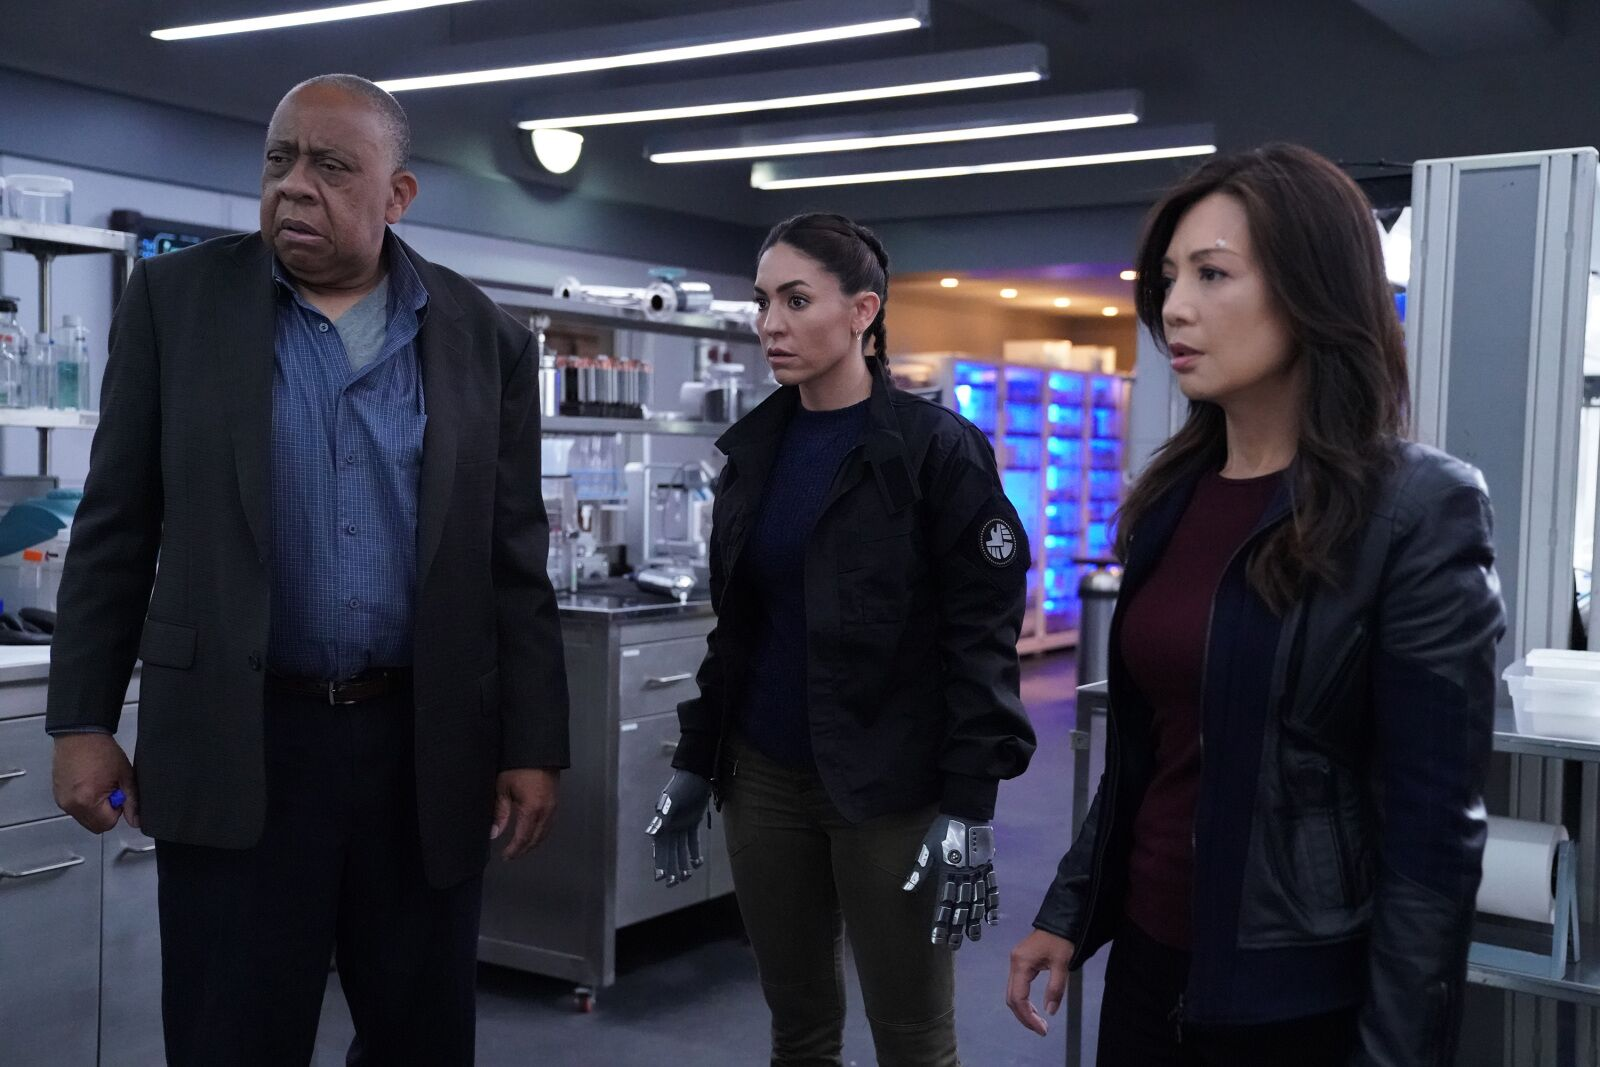 Why Agents of SHIELD's cancellation is a blow to the MCU